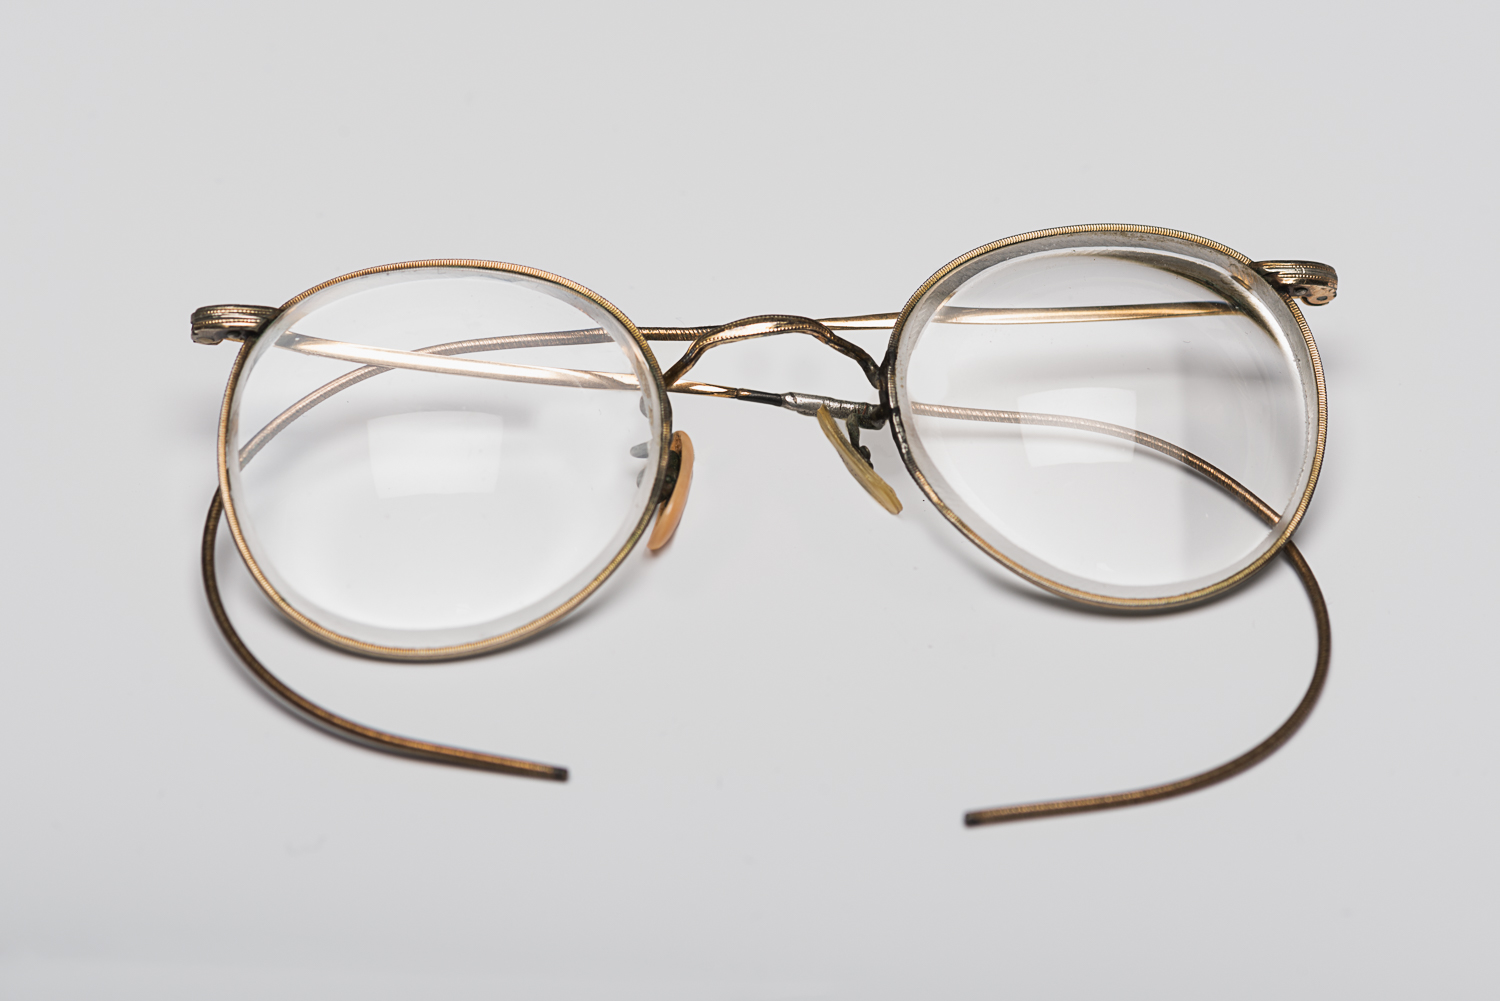 These round-shaped glasses belonged to Edith Reh. She managed to hide them inside her closed fist during every selection in various Nazi concentration camps.